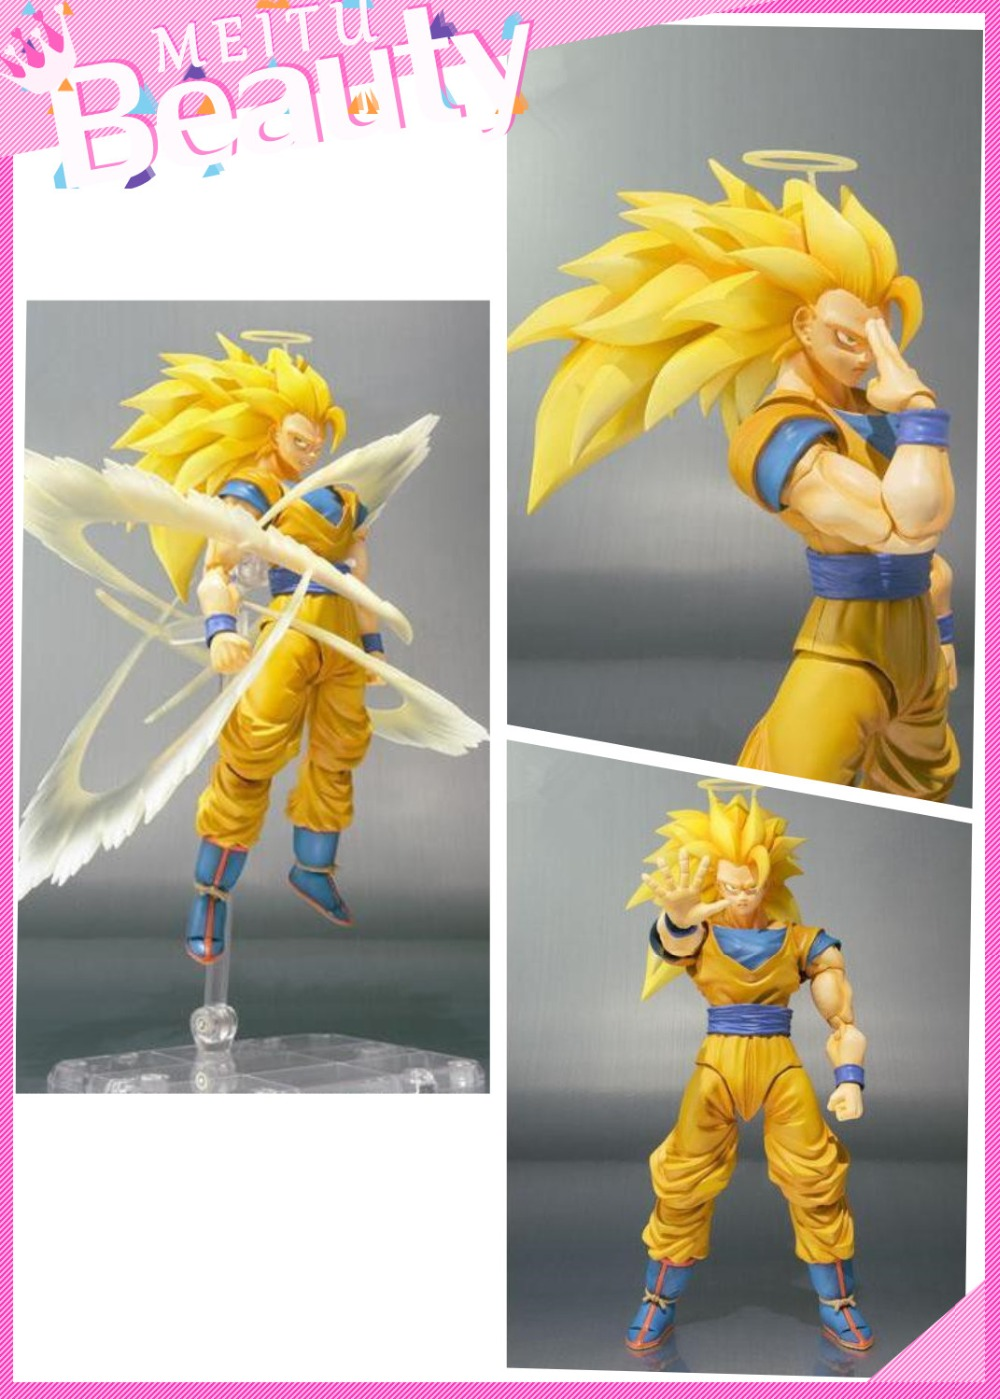 NEW Dragonball Toys Dragon Ball Z Action Figures Goku Figuarts Super Saiyan 3 Anime Figure Brinquedos Kid Toy Free Shipping rick owens lilies свитер